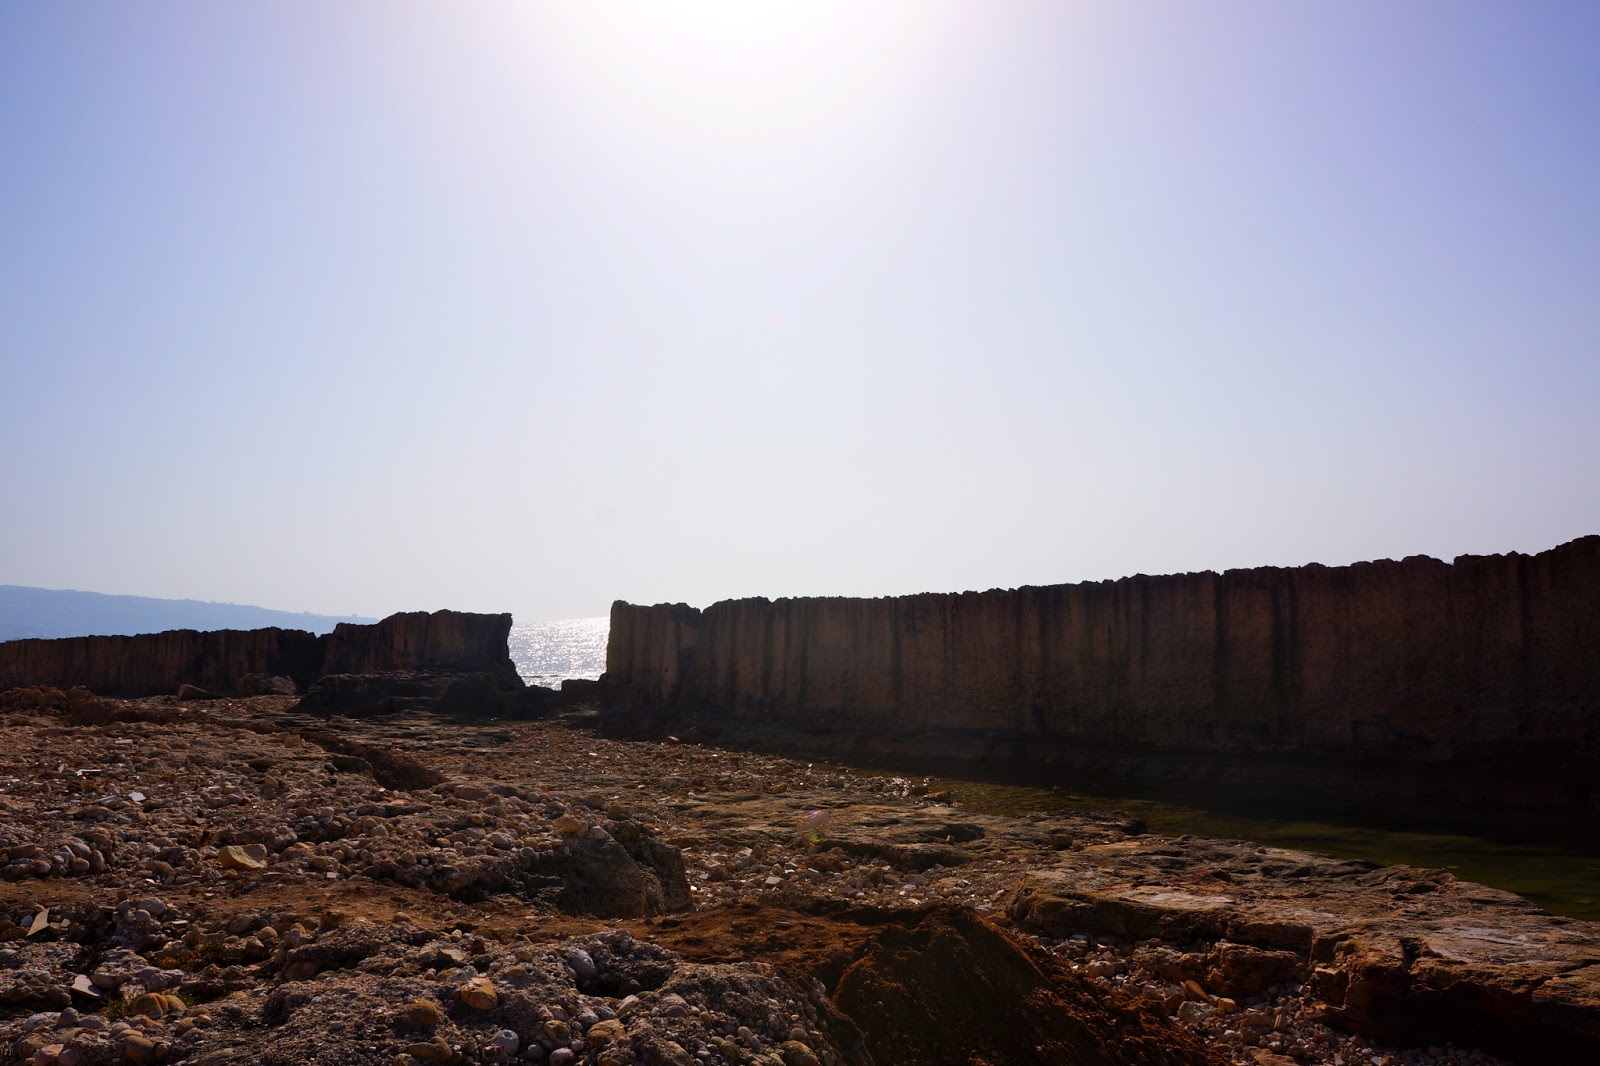 Picture of the Phoenician maritime wall in Batroun, Lebanon.